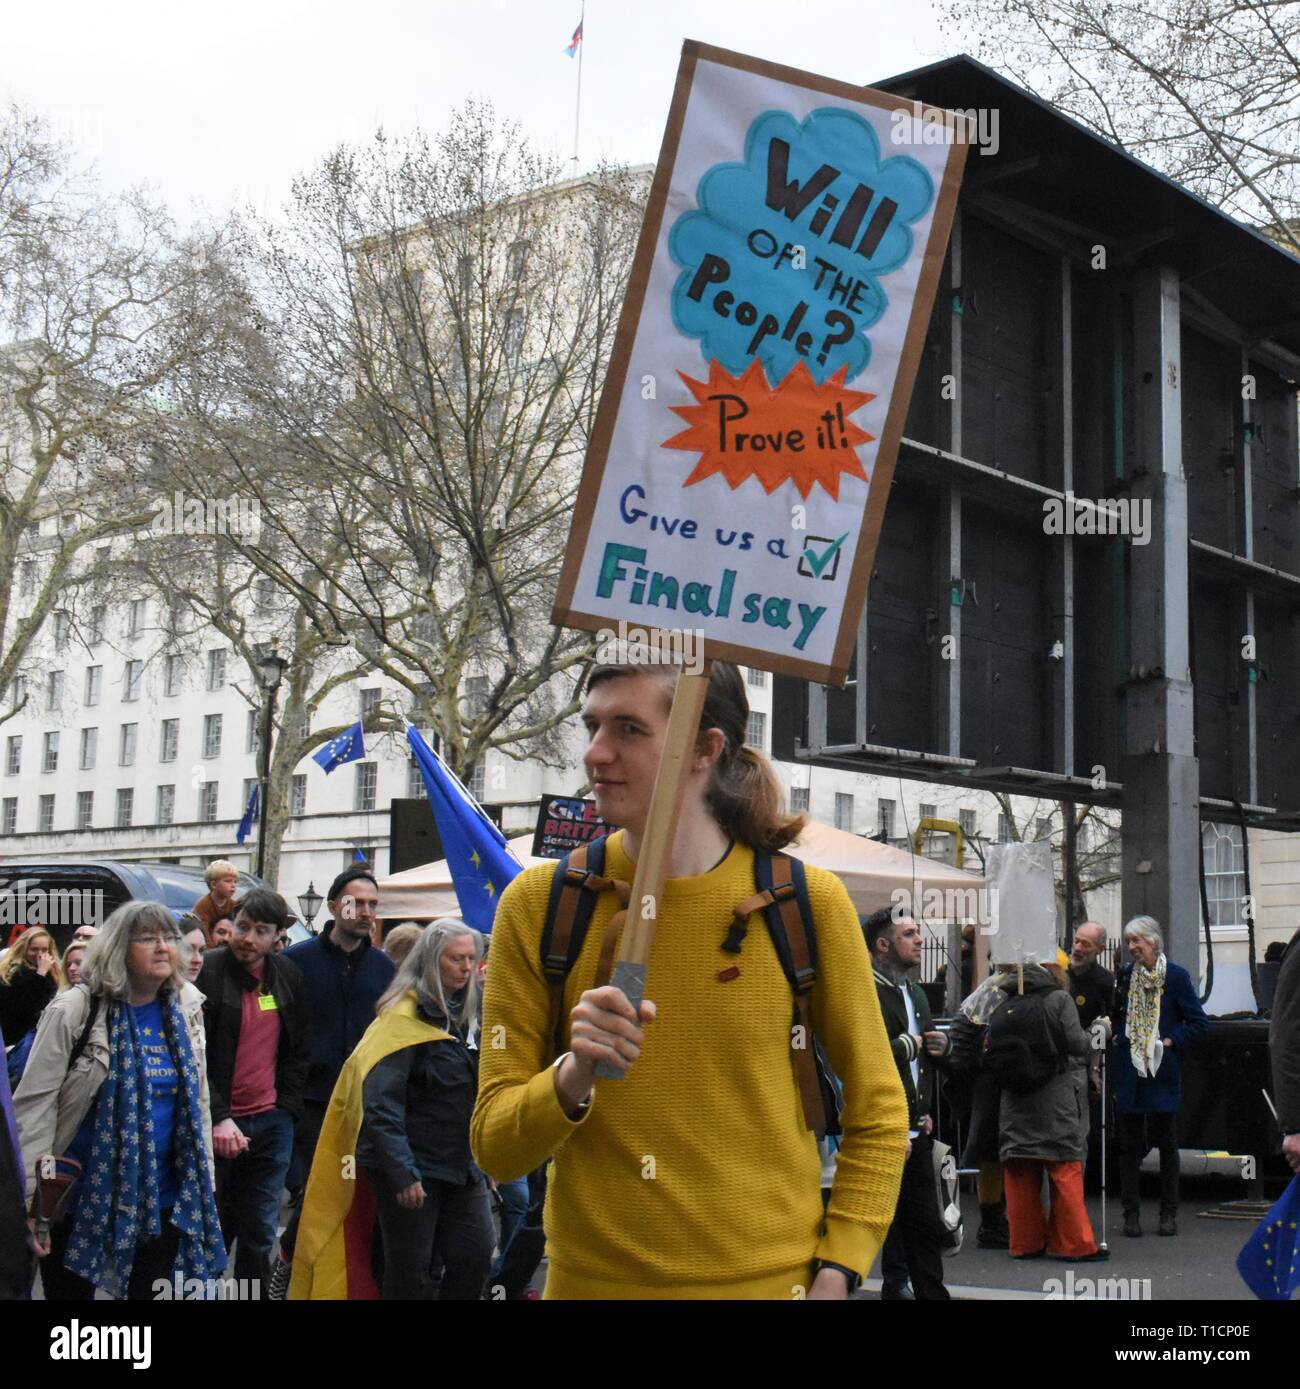 London/UK. March 23 2019. Thousands march to Parliament Square to demand a People's Vote. Credit: Katherine Da Silva/ Alamy news - Stock Image